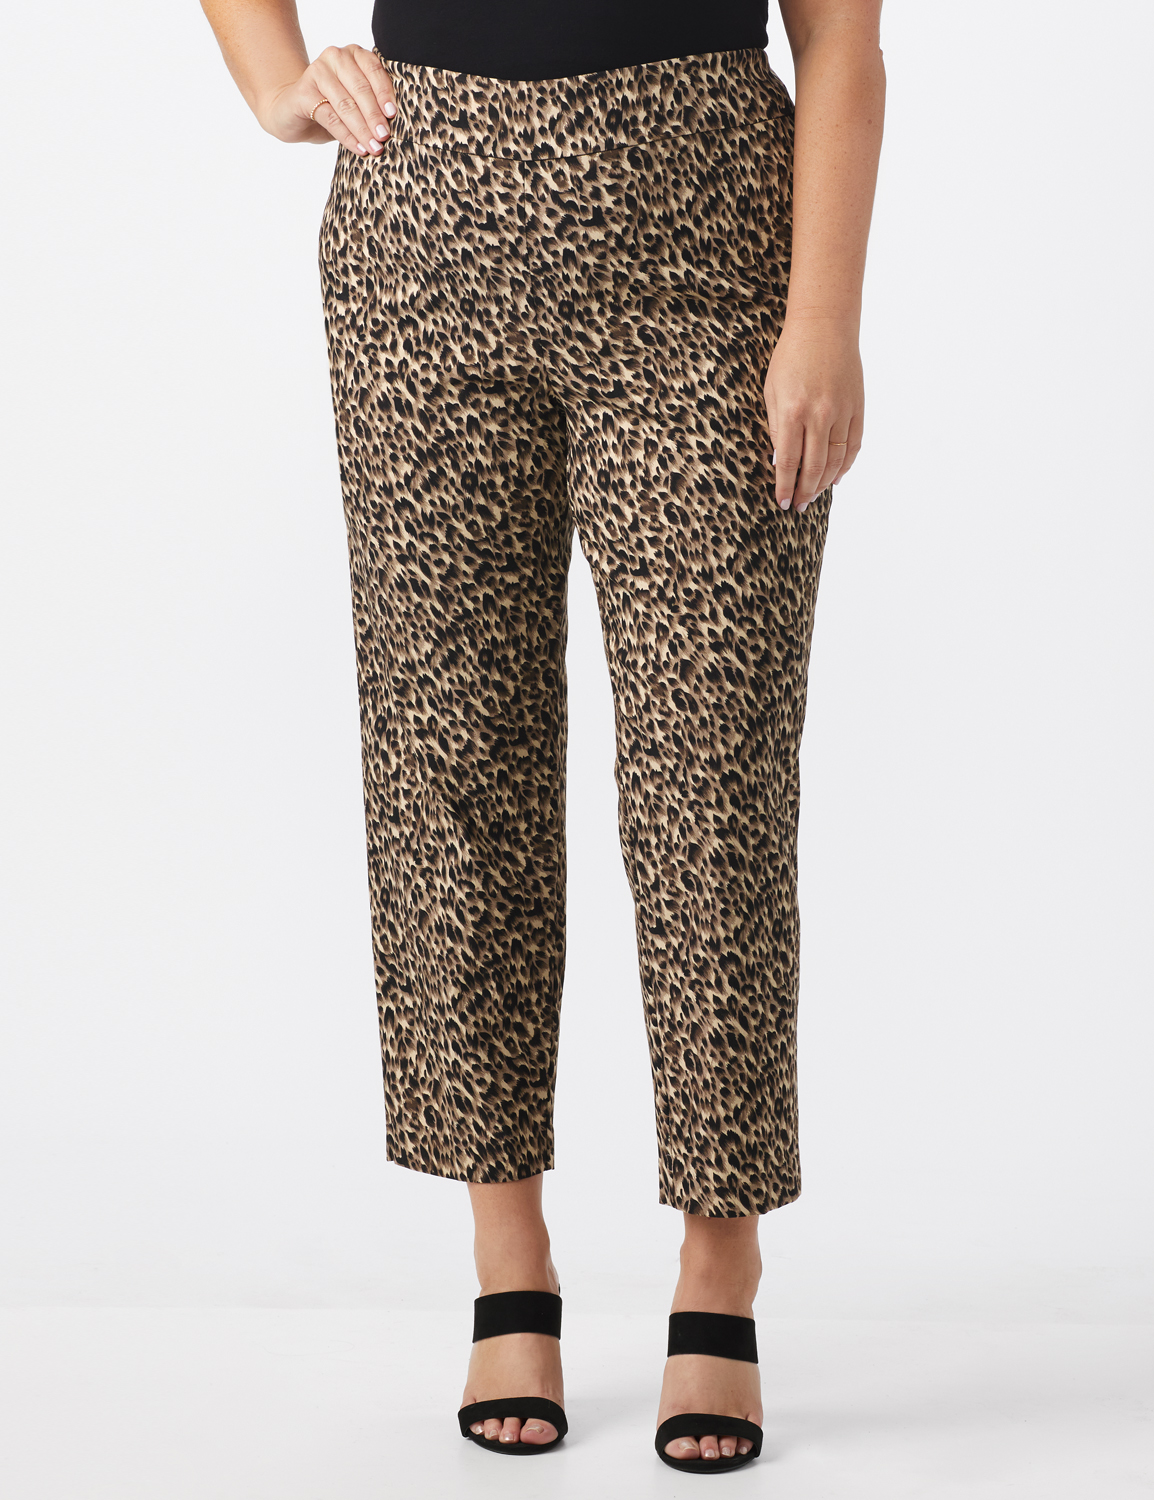 Plus Roz & Ali  Animal Print Superstretch Pull On Ankle Pants With Slits -Black/ Taupe - Front